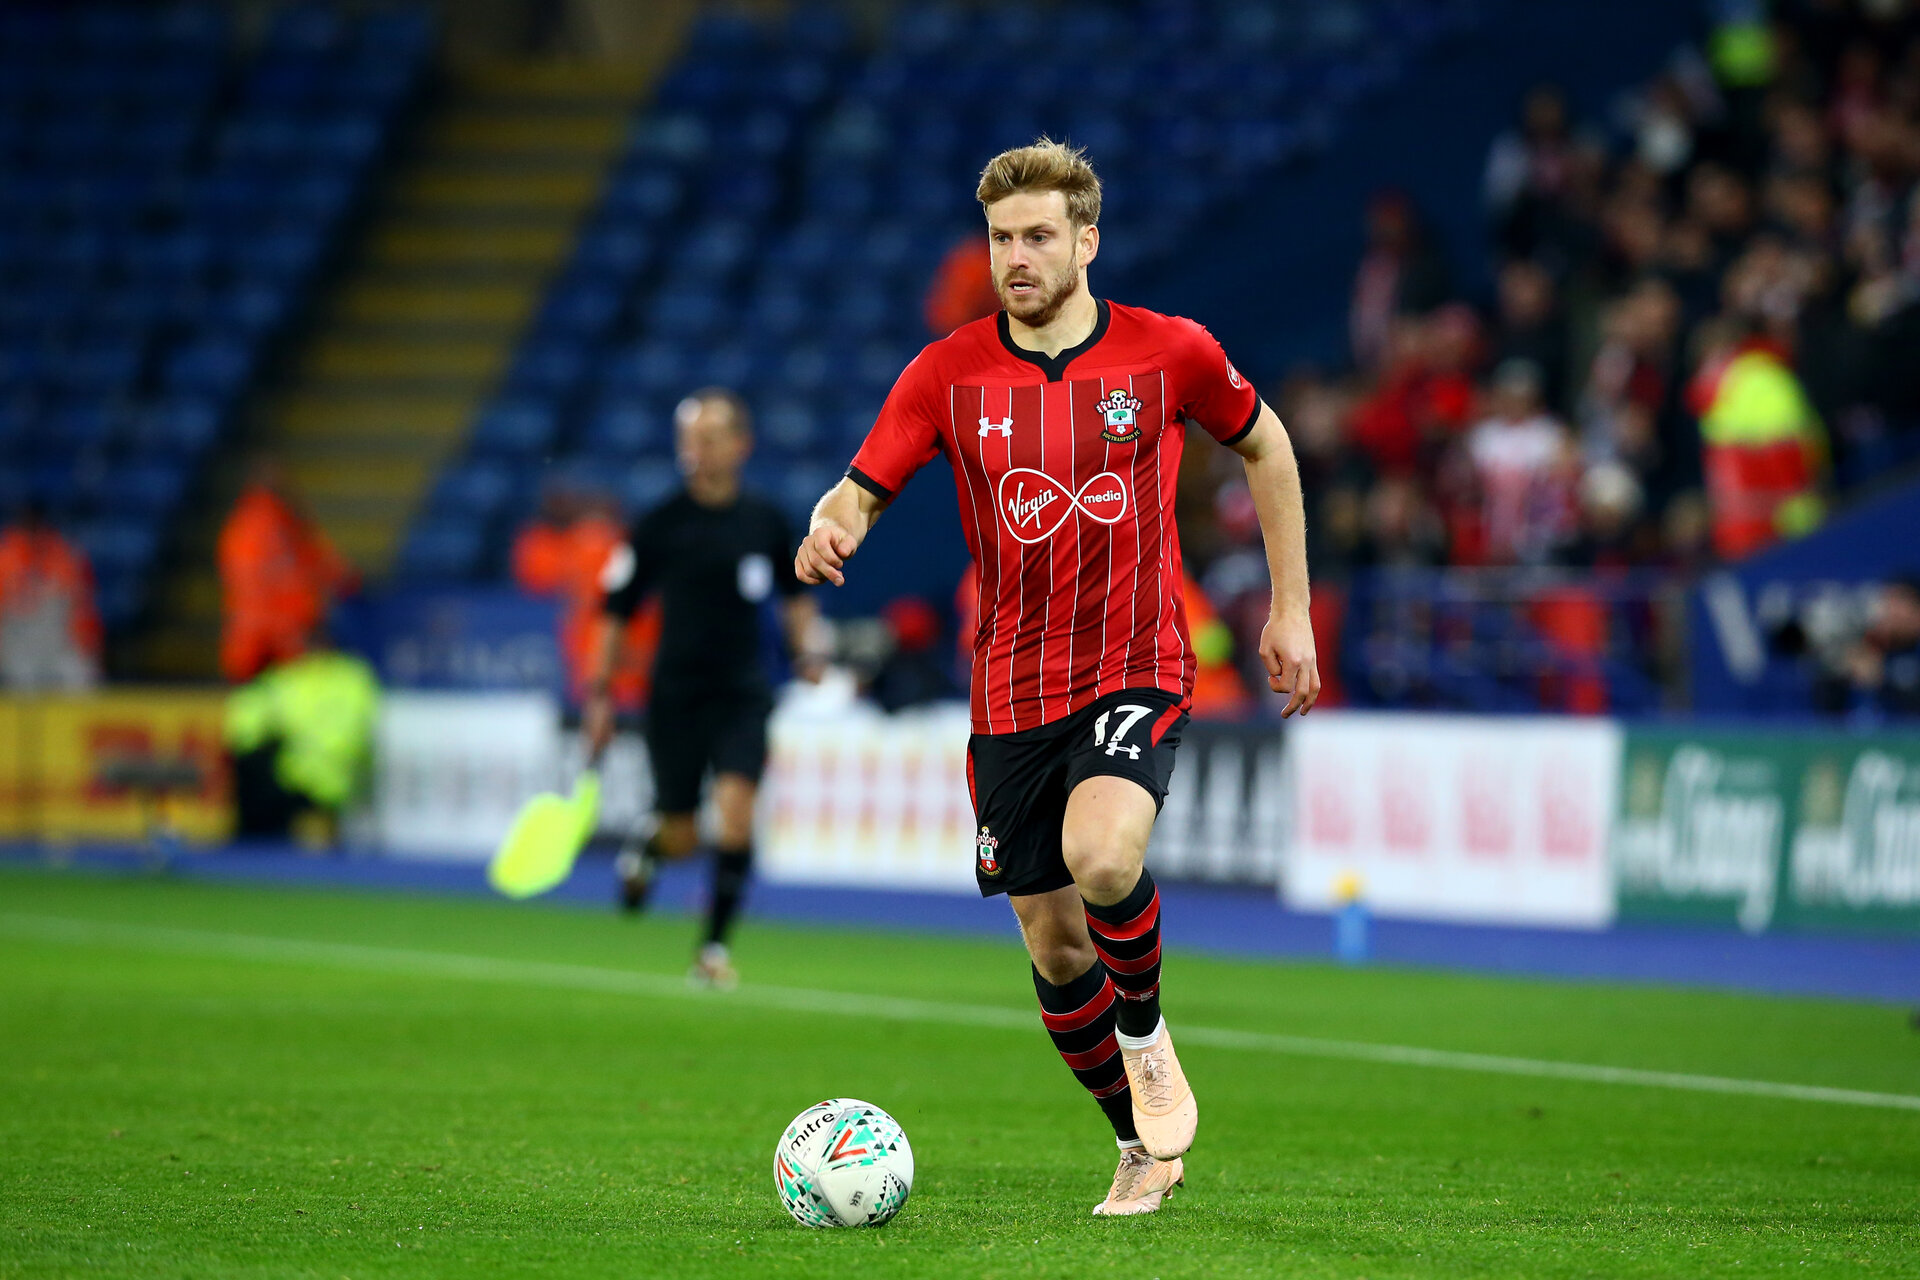 LEICESTER, ENGLAND - NOVEMBER 27: Stuart Armstrong during the Carabao Cup Fourth Round match between Leicester City and Southampton at The King Power Stadium on October 30, 2018 in Leicester, England. (Photo by James Bridle - Southampton FC/Southampton FC via Getty Images)